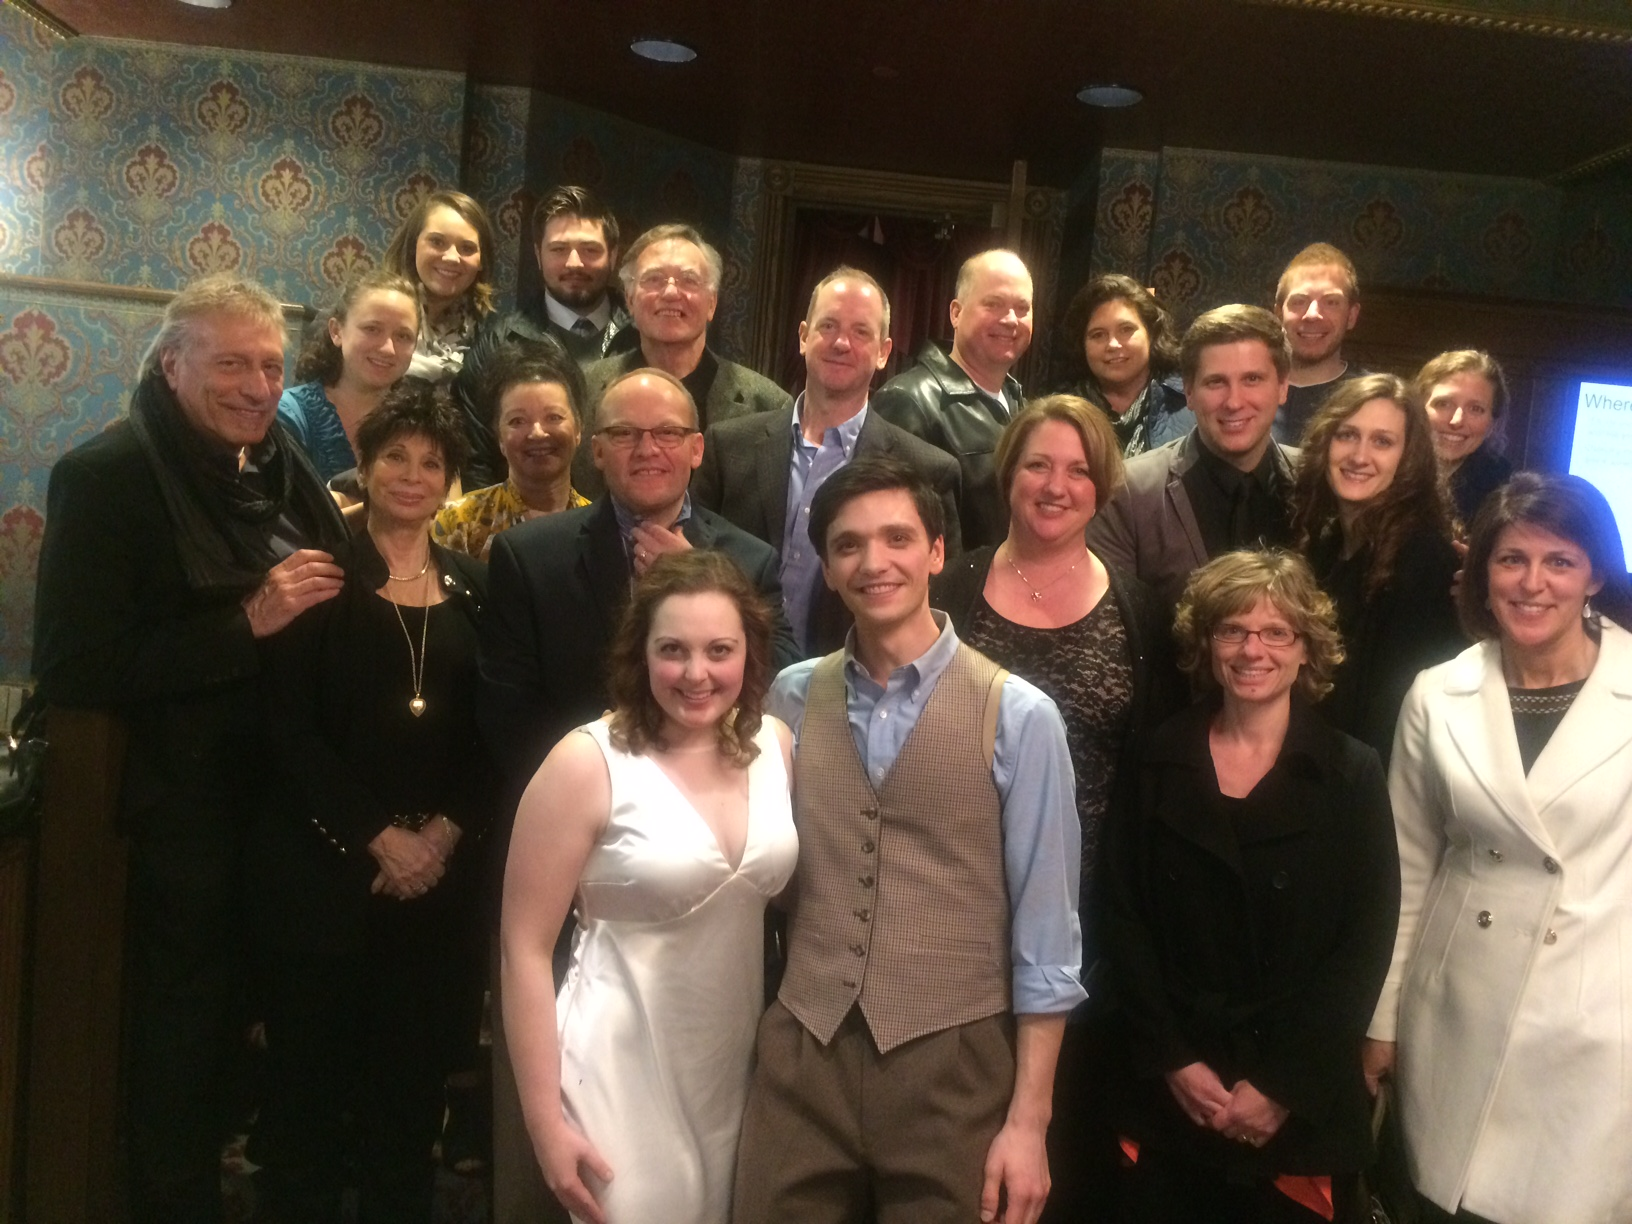 Photo of Romeo and Juliet and the WBD group that attended the play to support Peter Tolly in his leading role